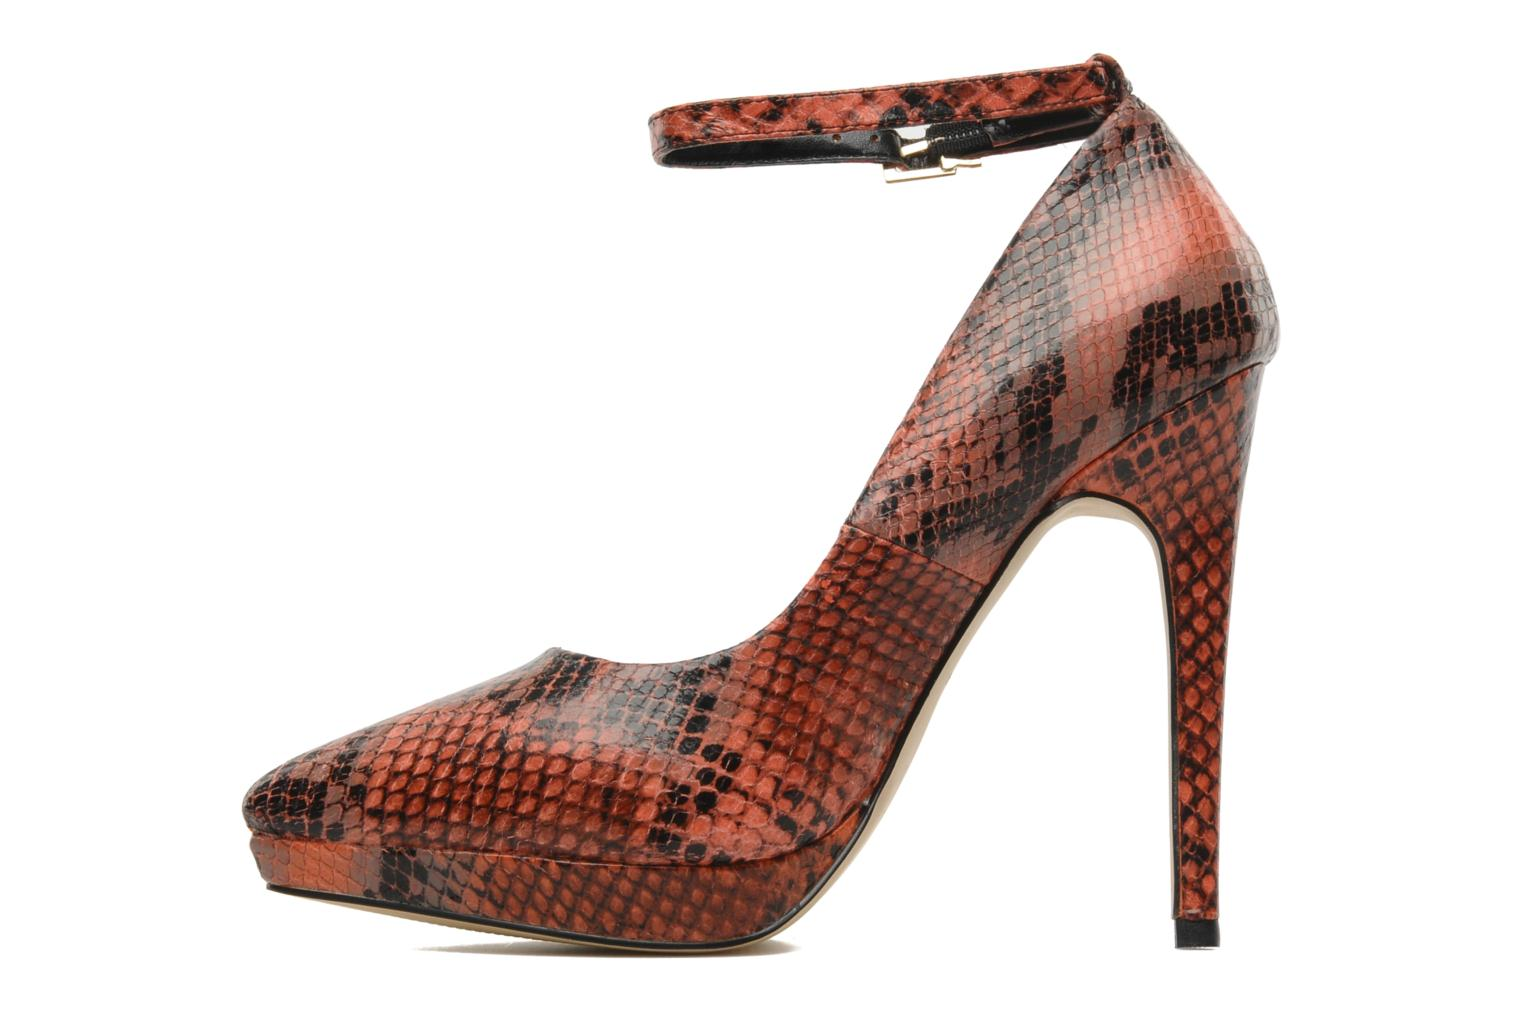 ANNIE RED SNAKE LEATHER